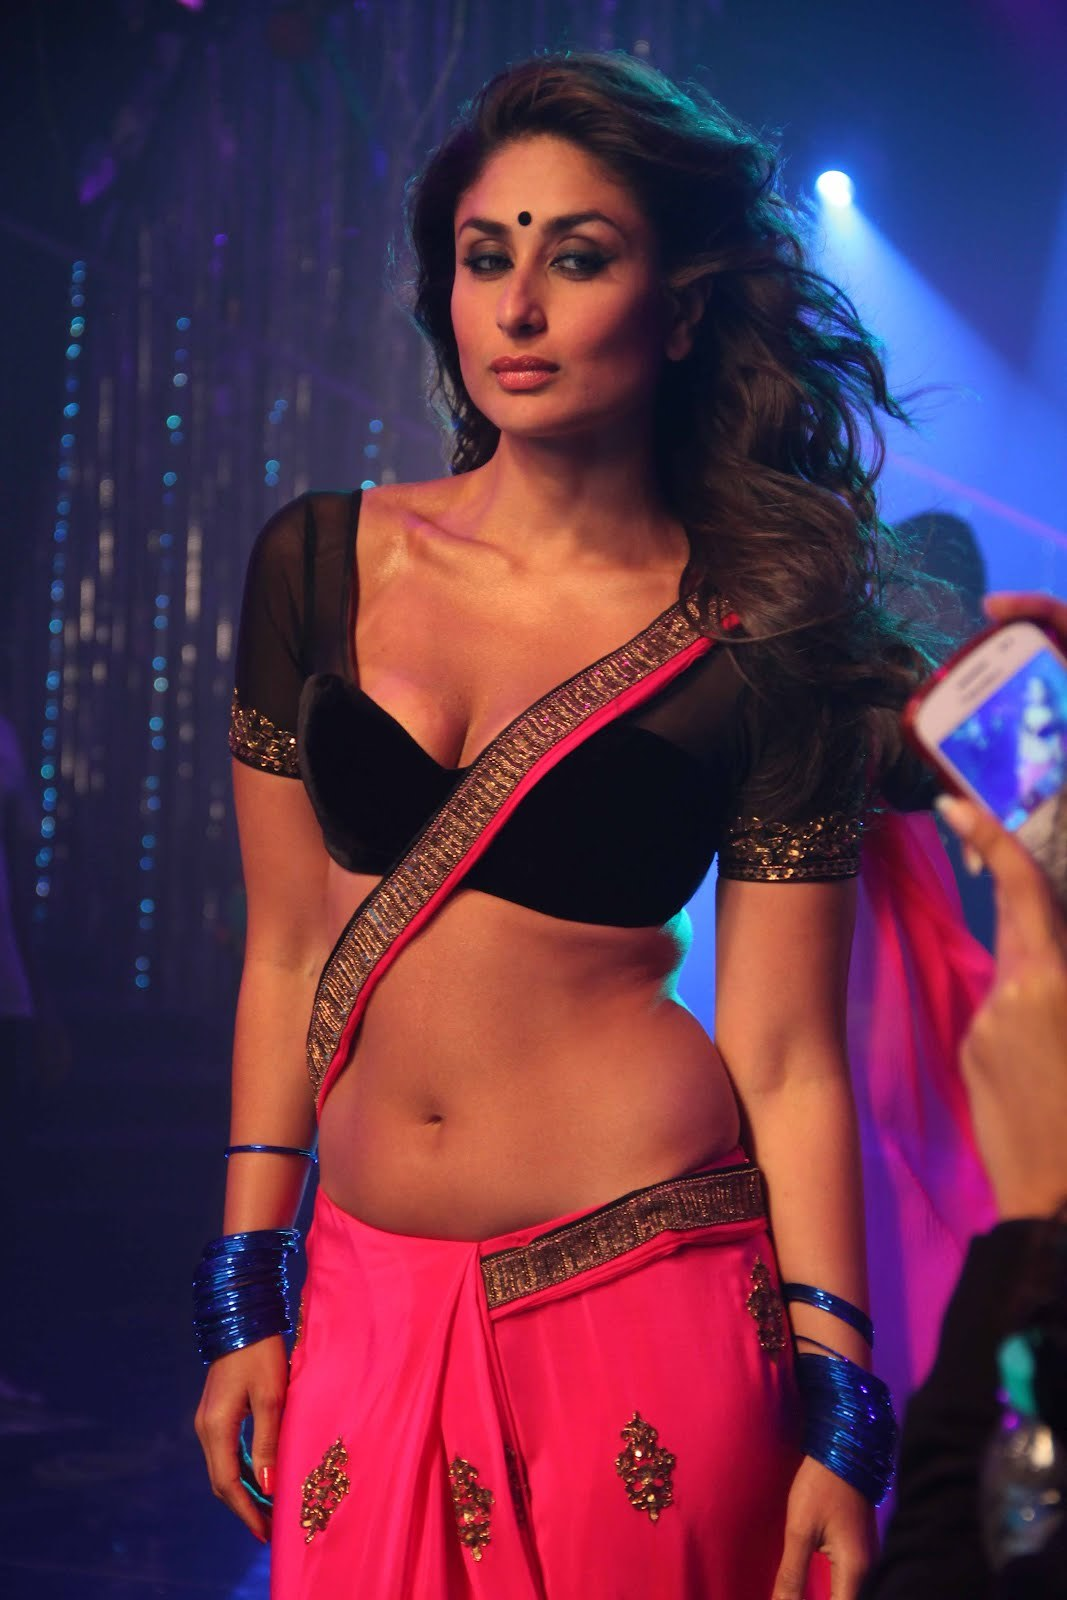 kareena kapoor hot navel show from movie heroine 6